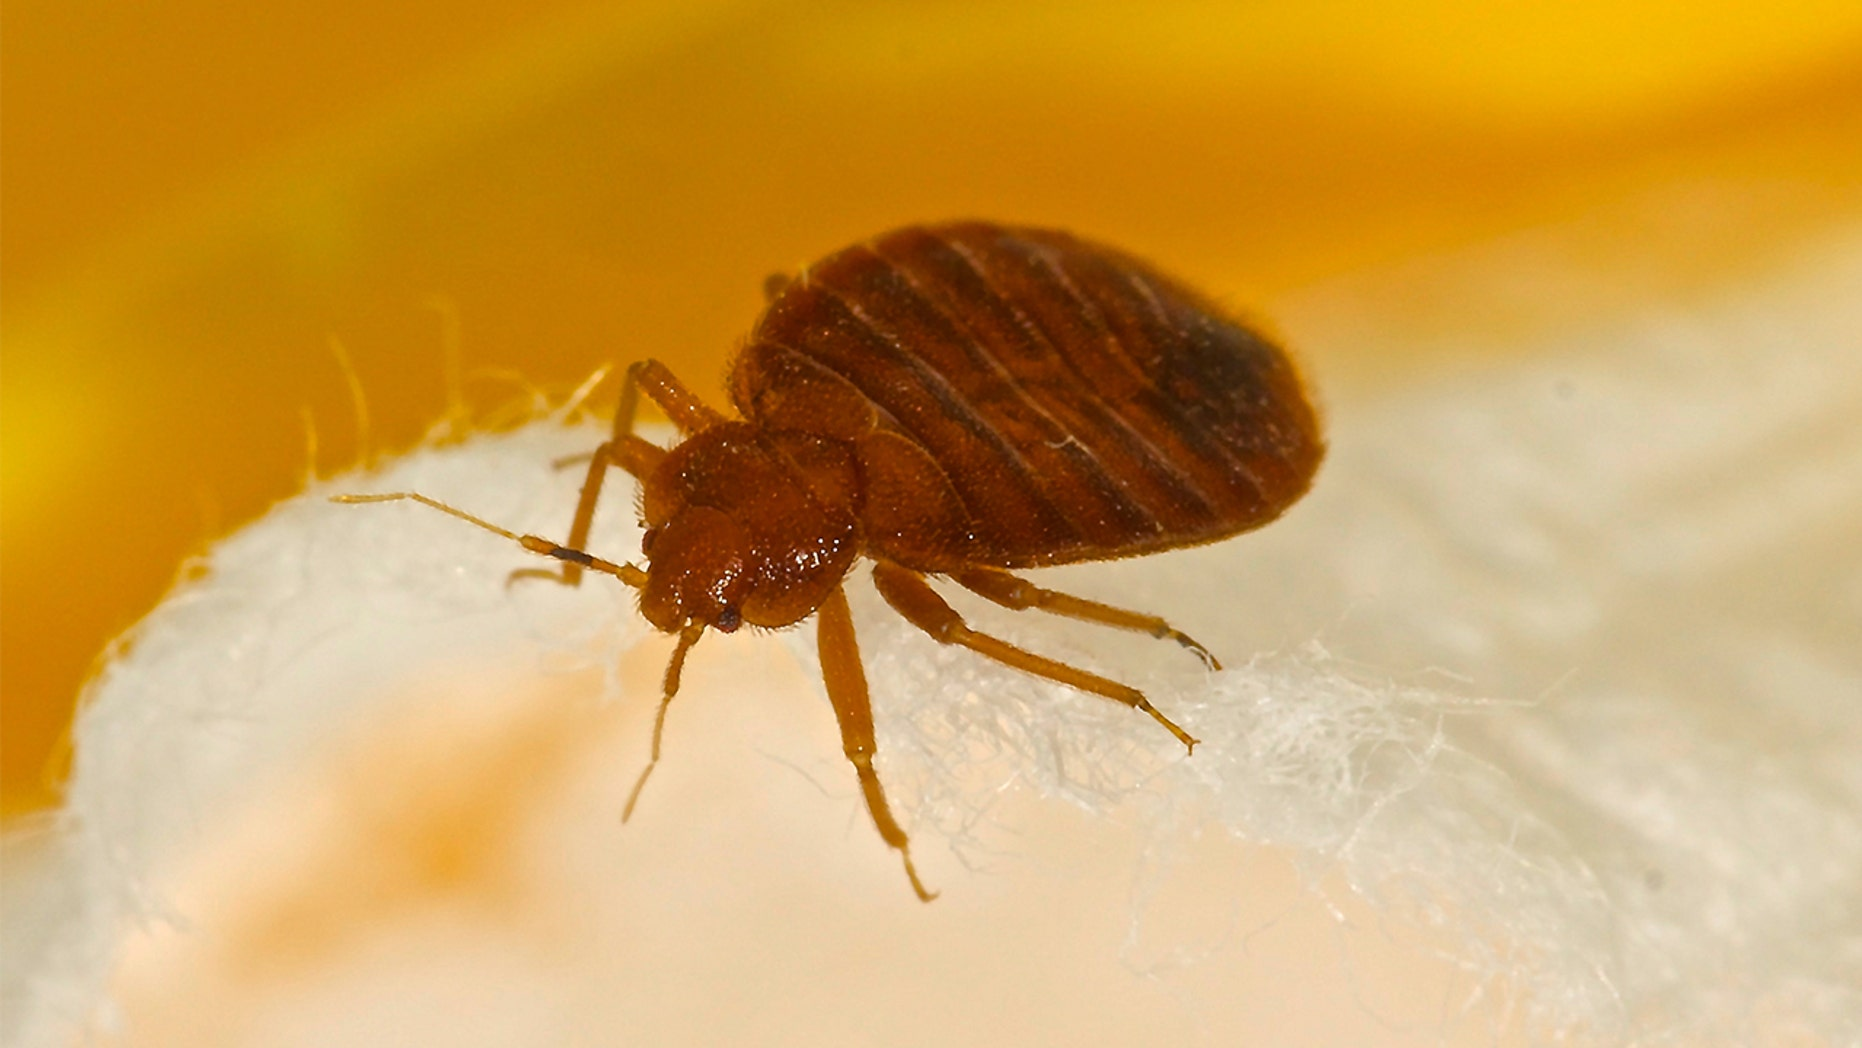 For the second year in a row, Baltimore ranked as the worst city for bed bug infestation.